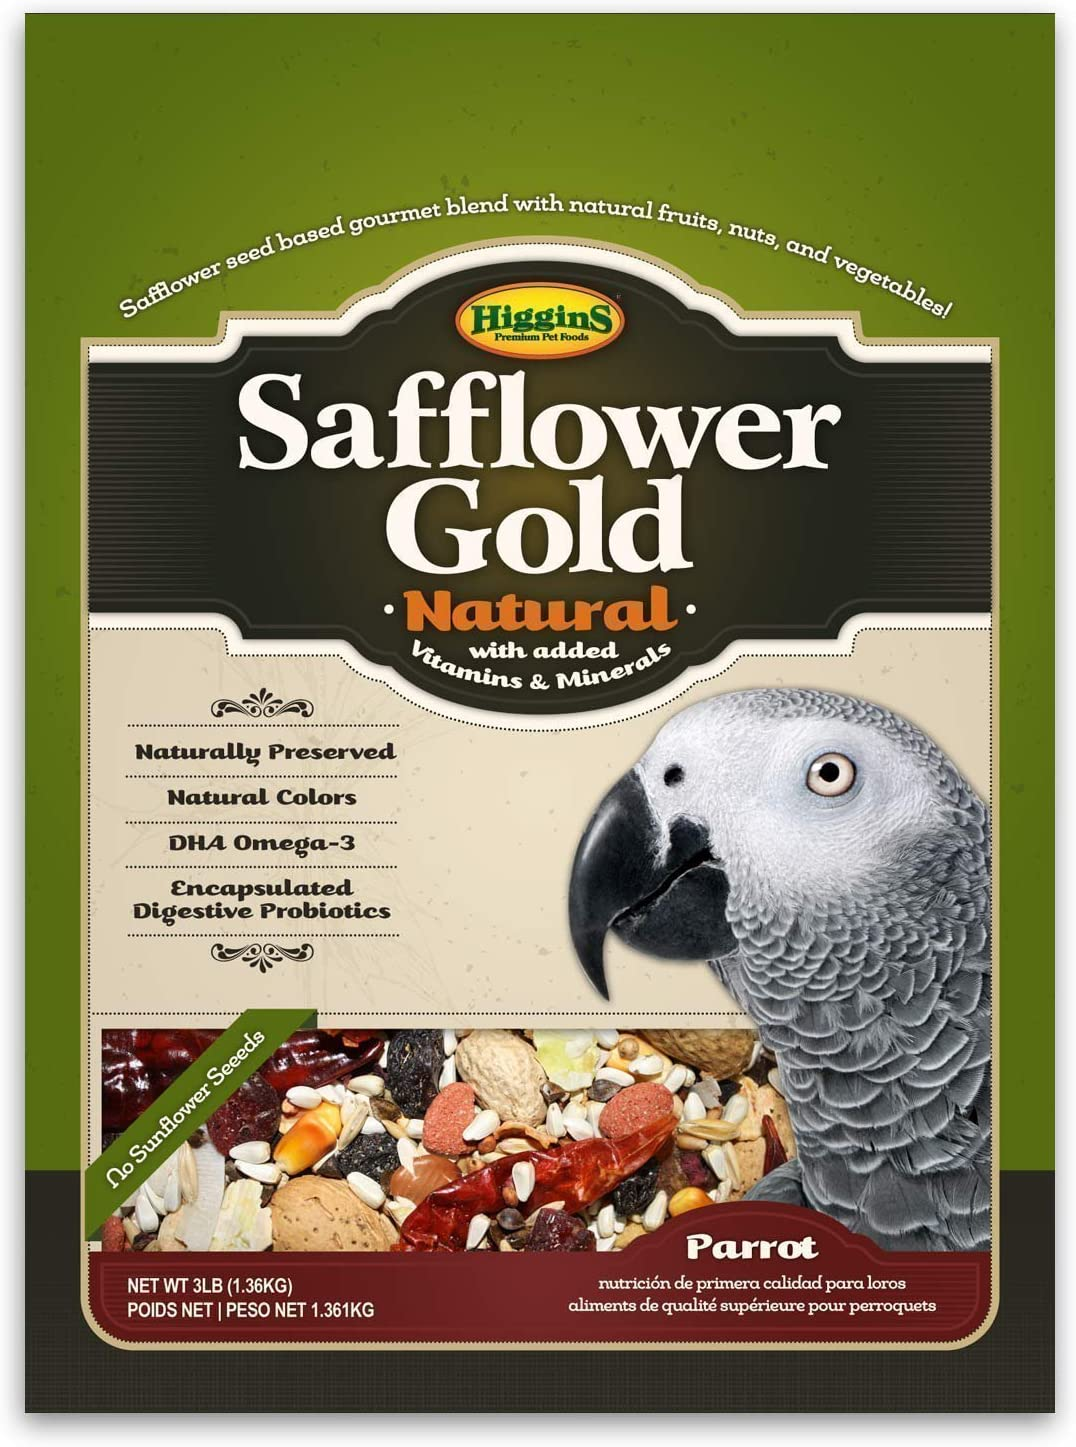 Higgins Safflower Gold Natural Food Mix for Parrots, Cockatoos, Amazons & Macaws. Parrot food, Large Bird Food 3 lb Bag (Fast Delivery) by Just Jak's Pet Market